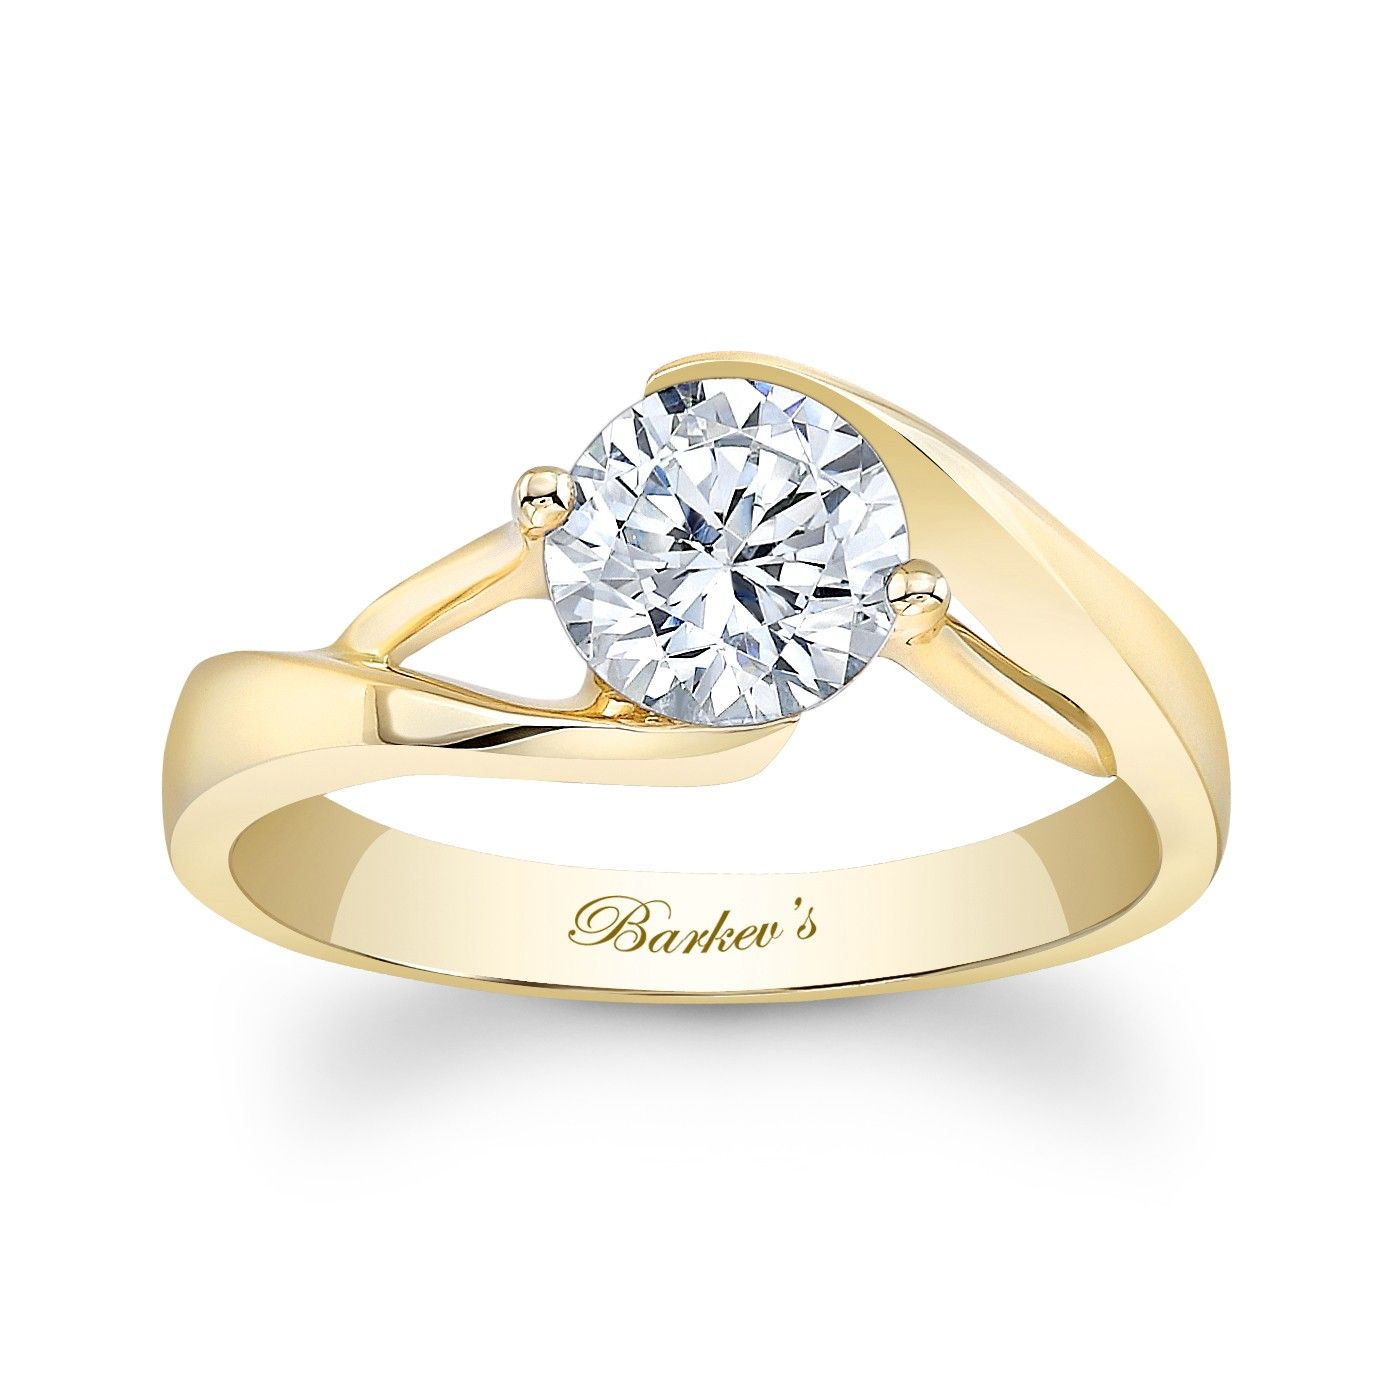 Yellow Gold Solitaire Ring 7543LYW A unique contemporary